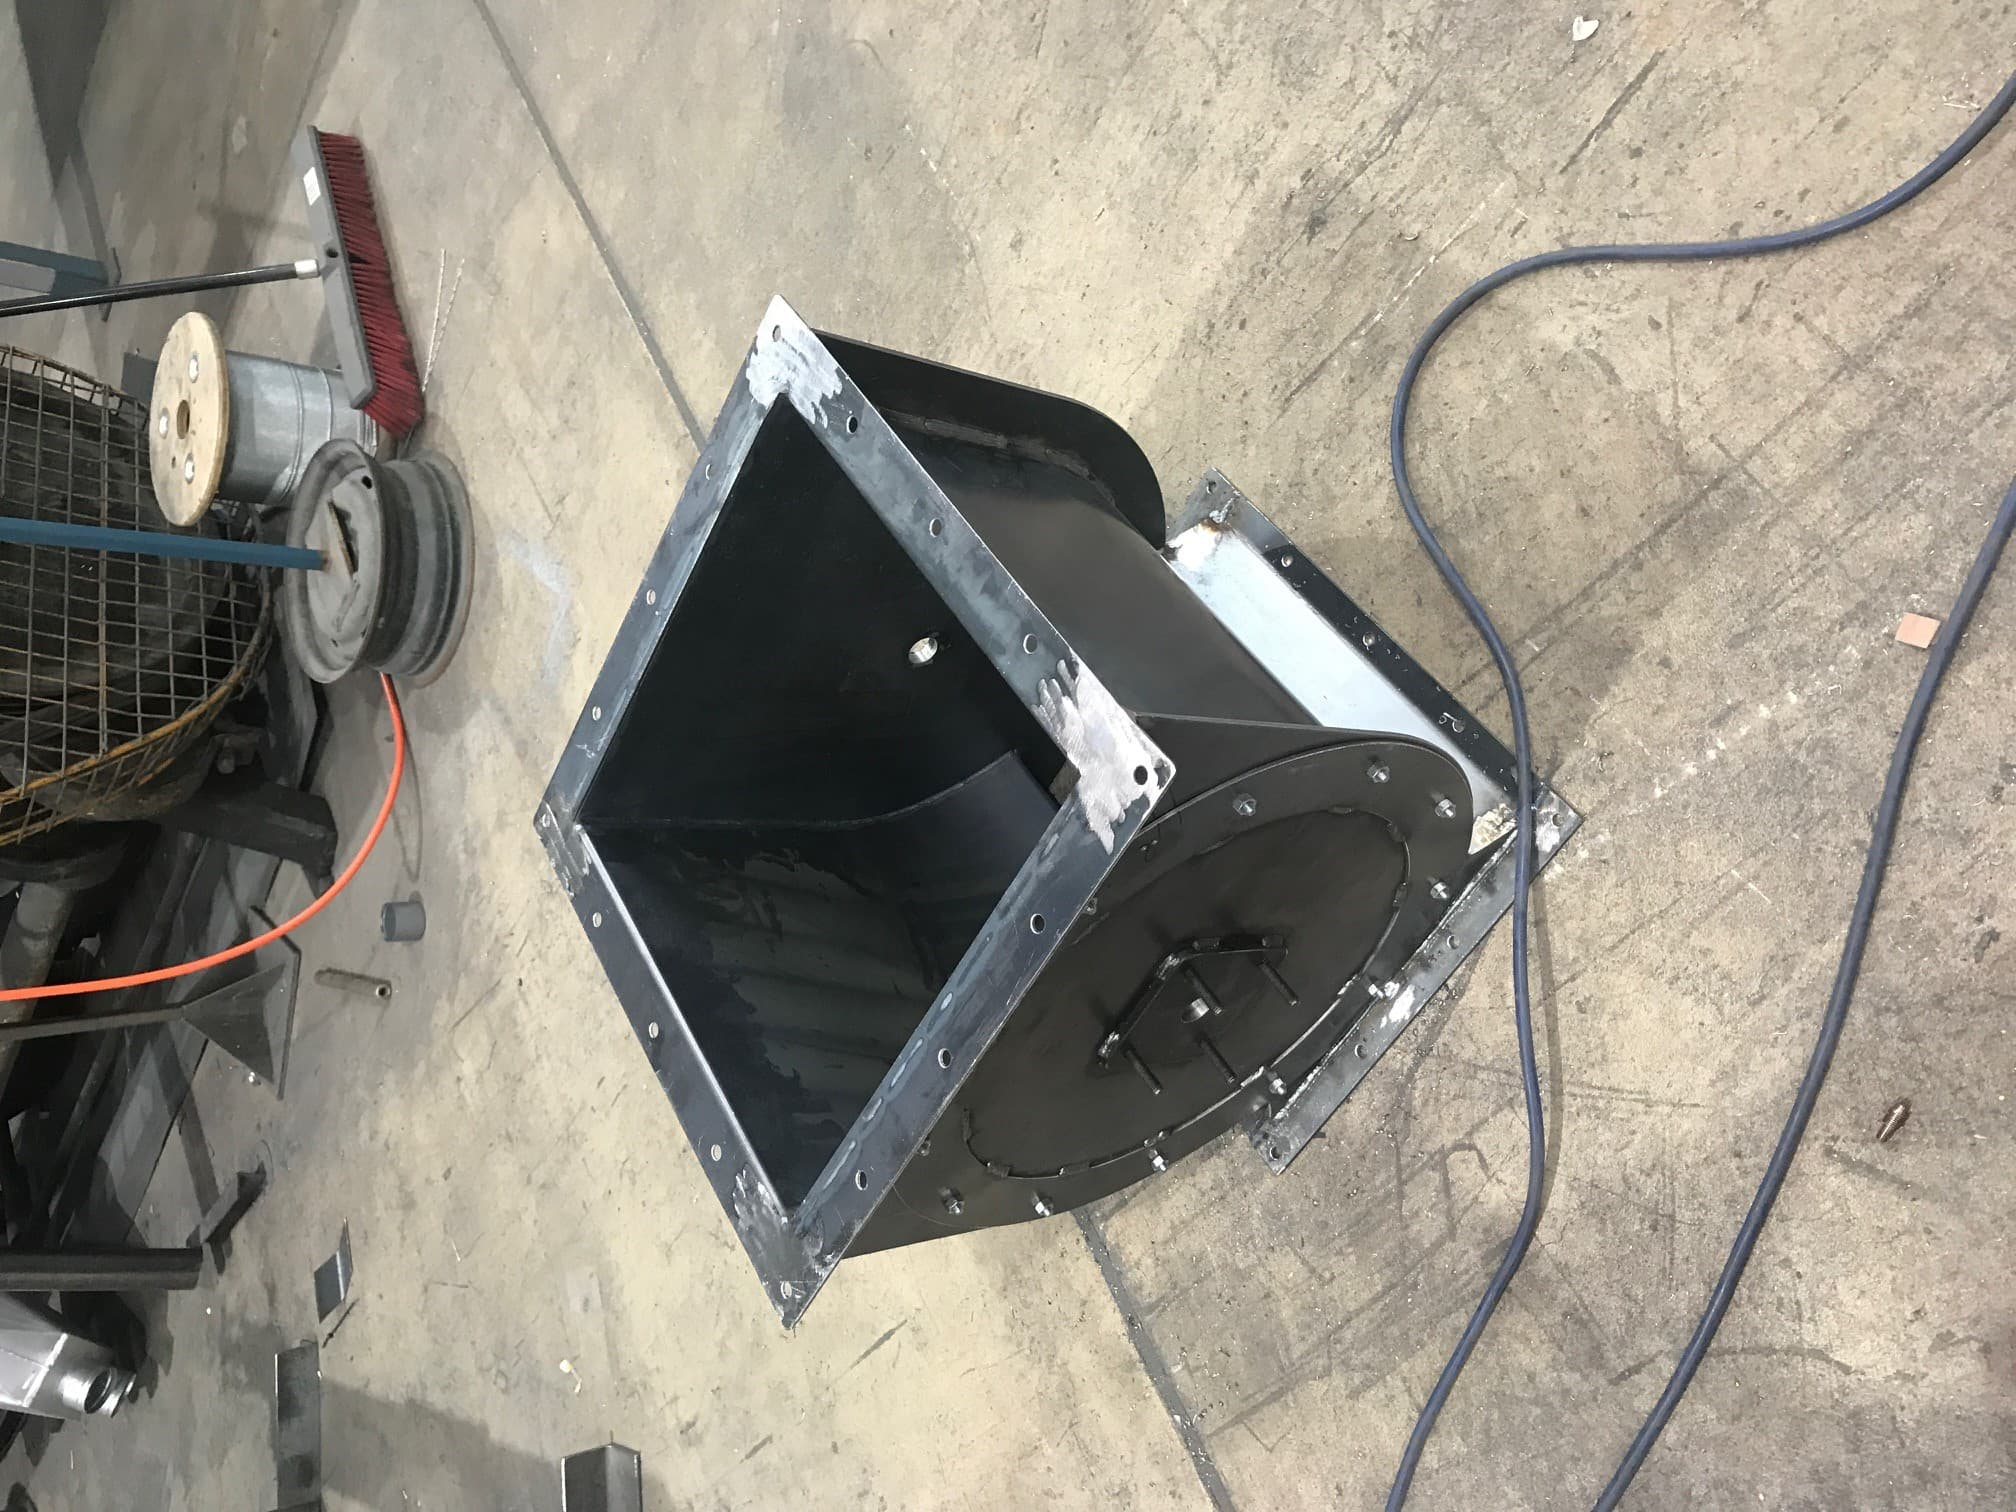 Rv Body During Fabrication 400x400 Inlet 2